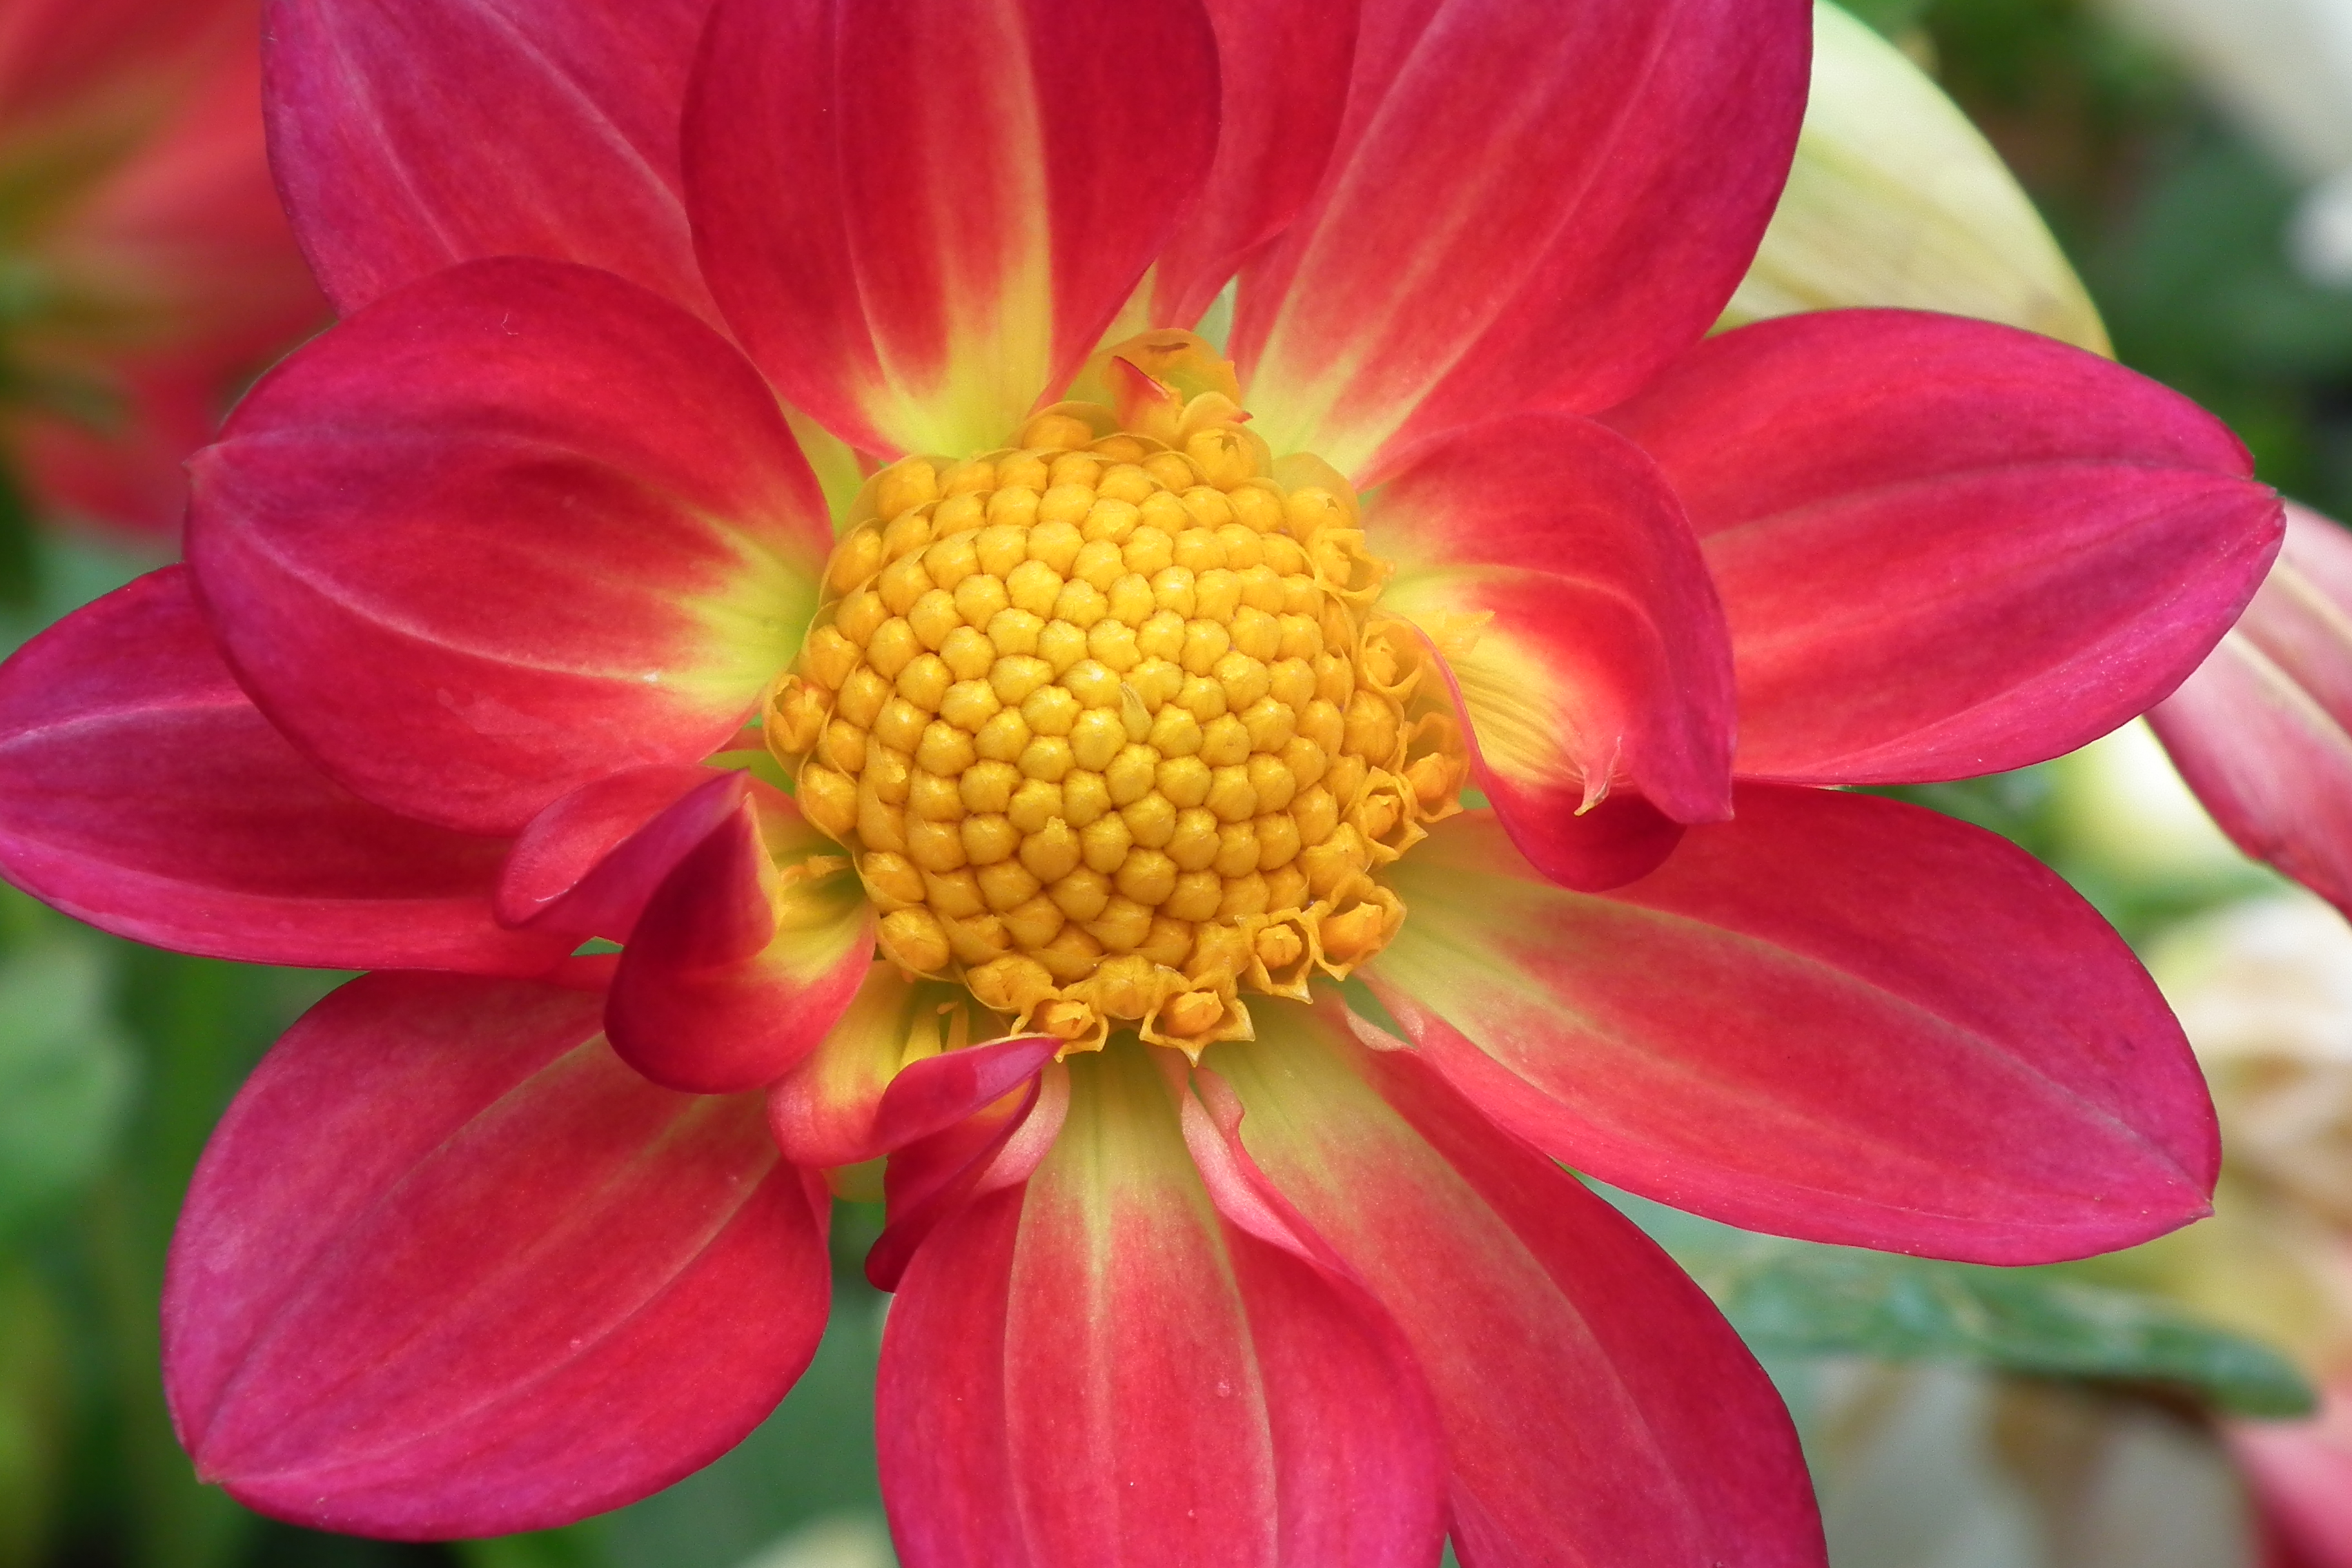 Dahlia at lalbagh flower show 7186